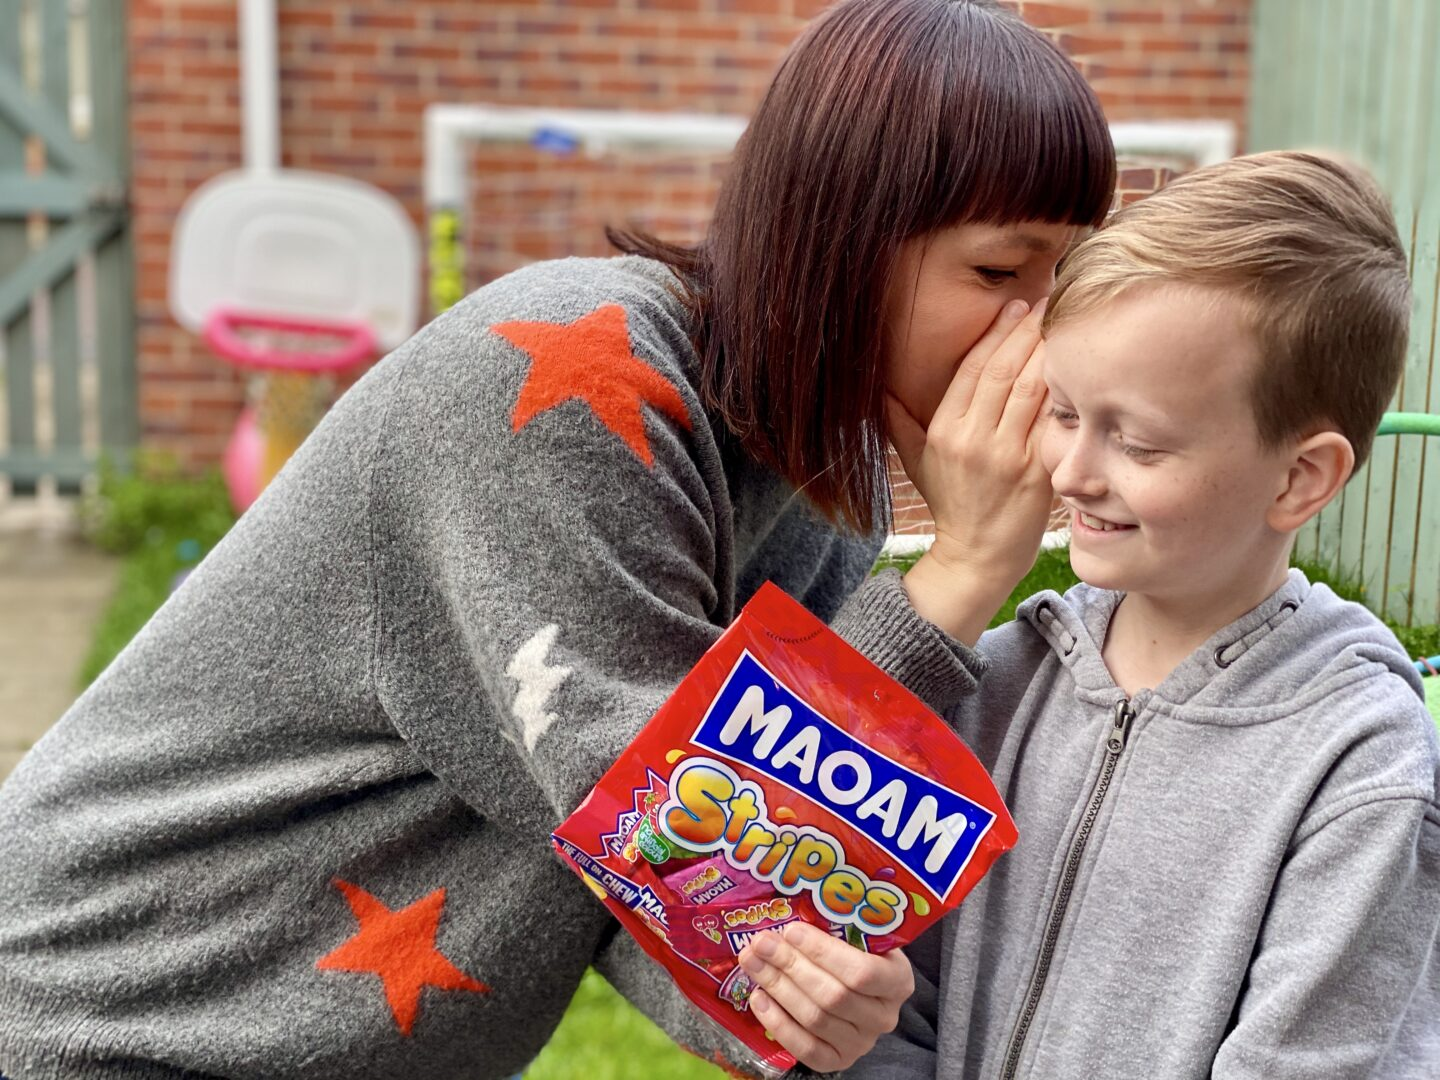 AD: 4 easy ideas for Halloween fun at home with MAOAM's Mischief Hub